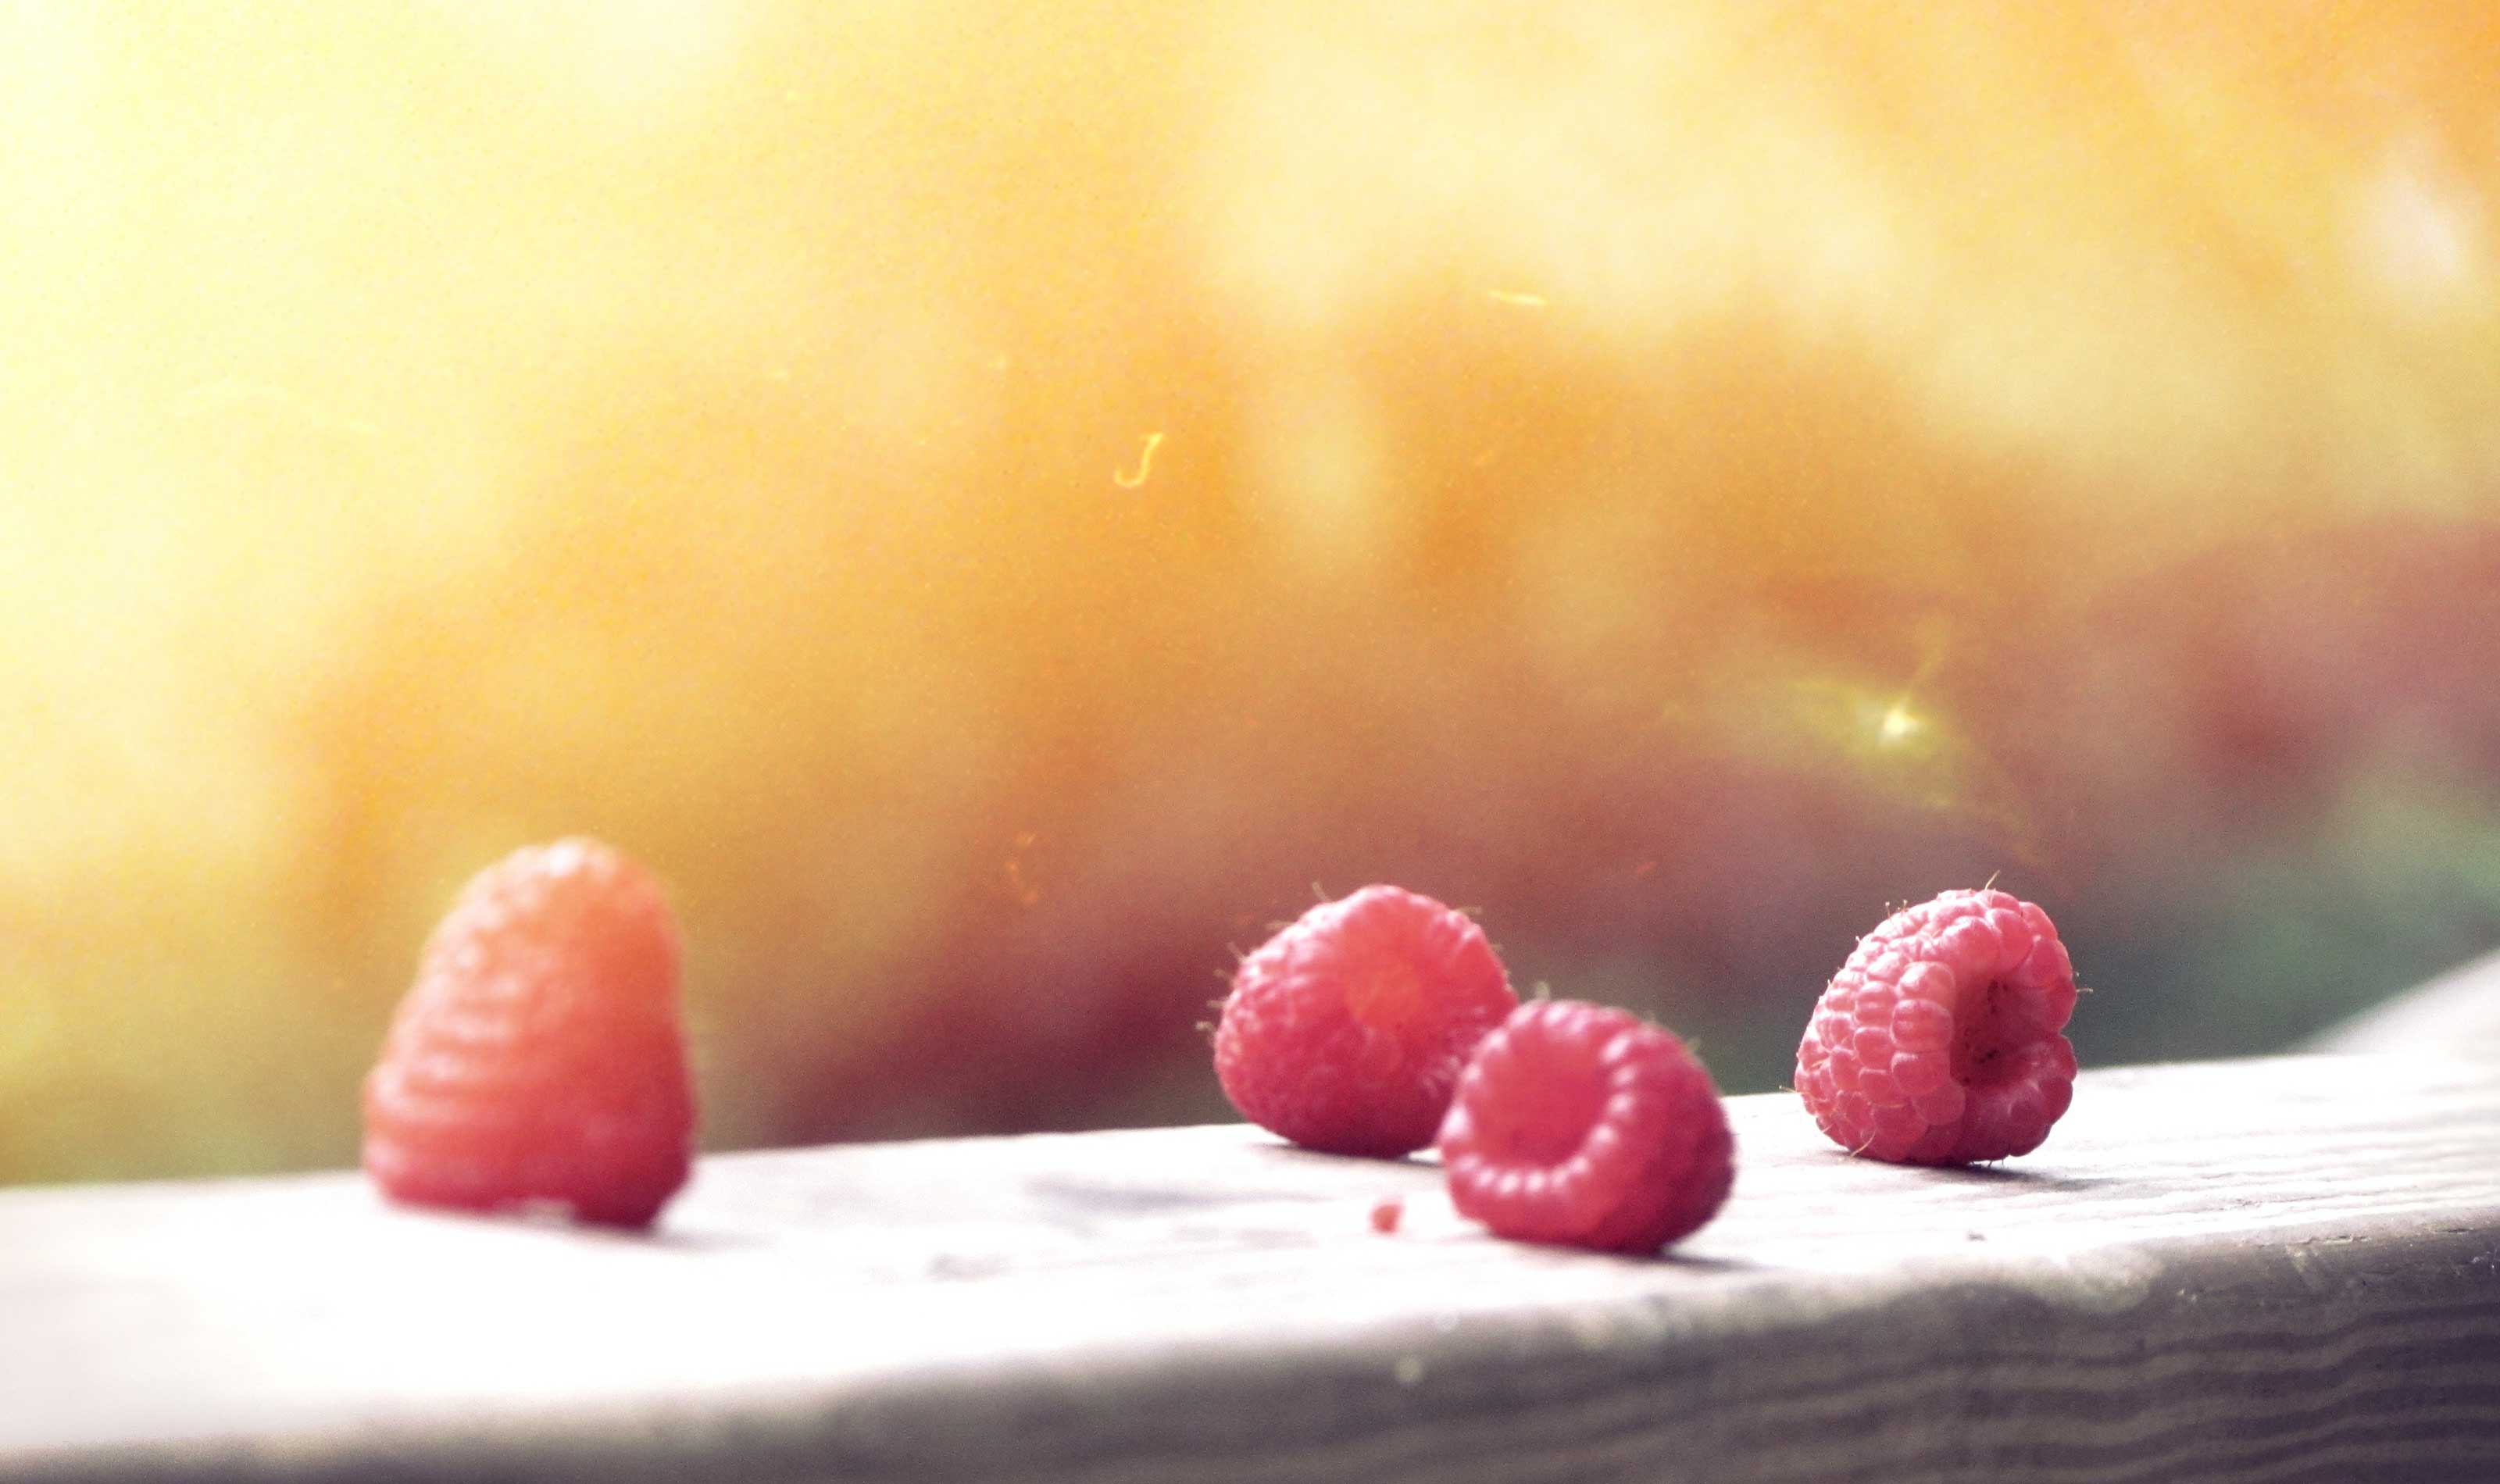 Photograph: Raspberries